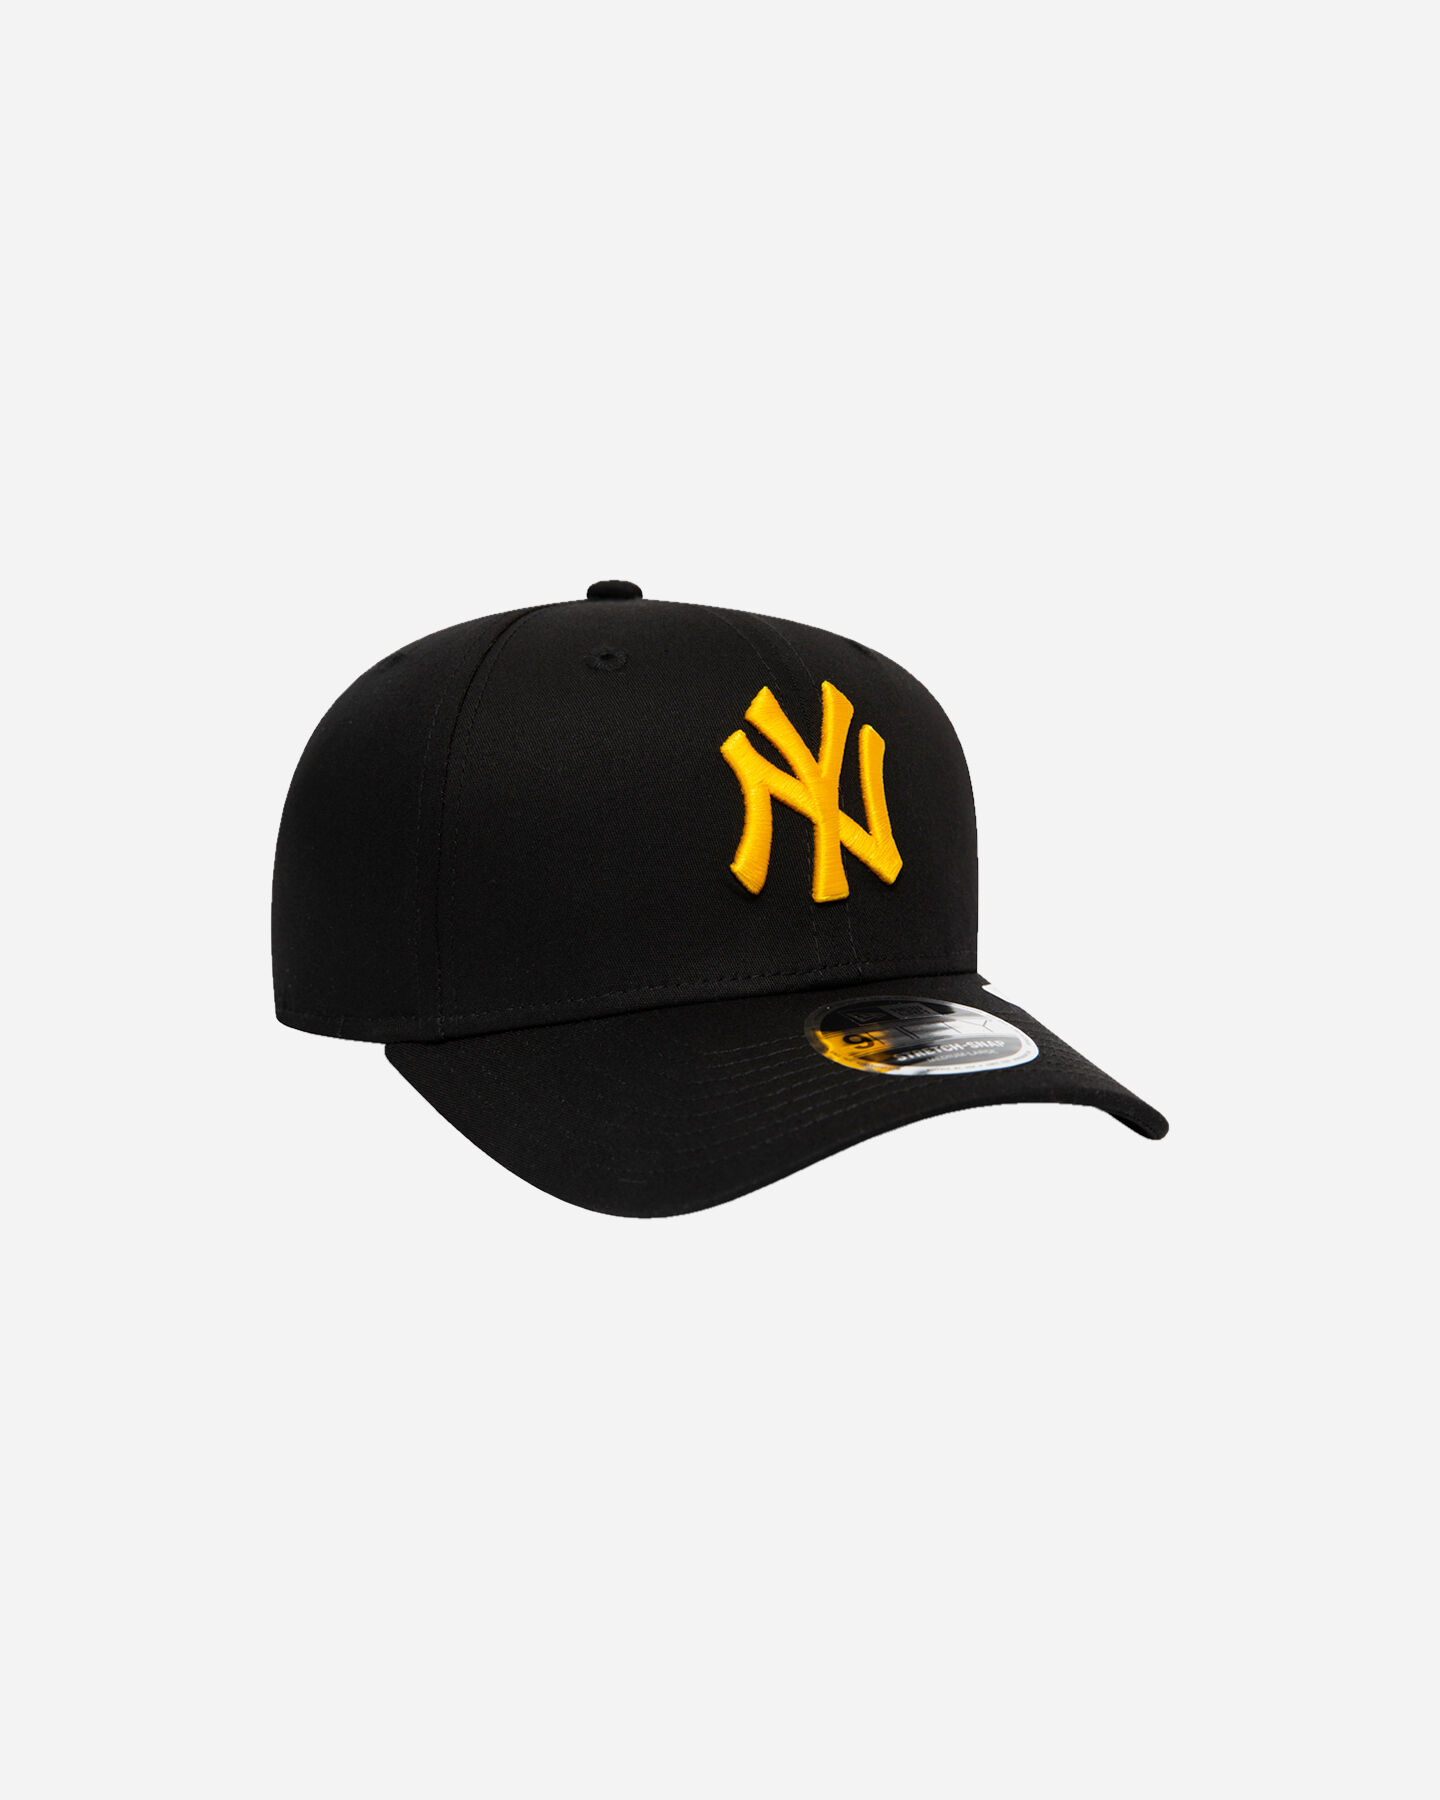 Cappellino NEW ERA NEW YORK YANKEES 9FIFTY STRETCH S5170061 scatto 2